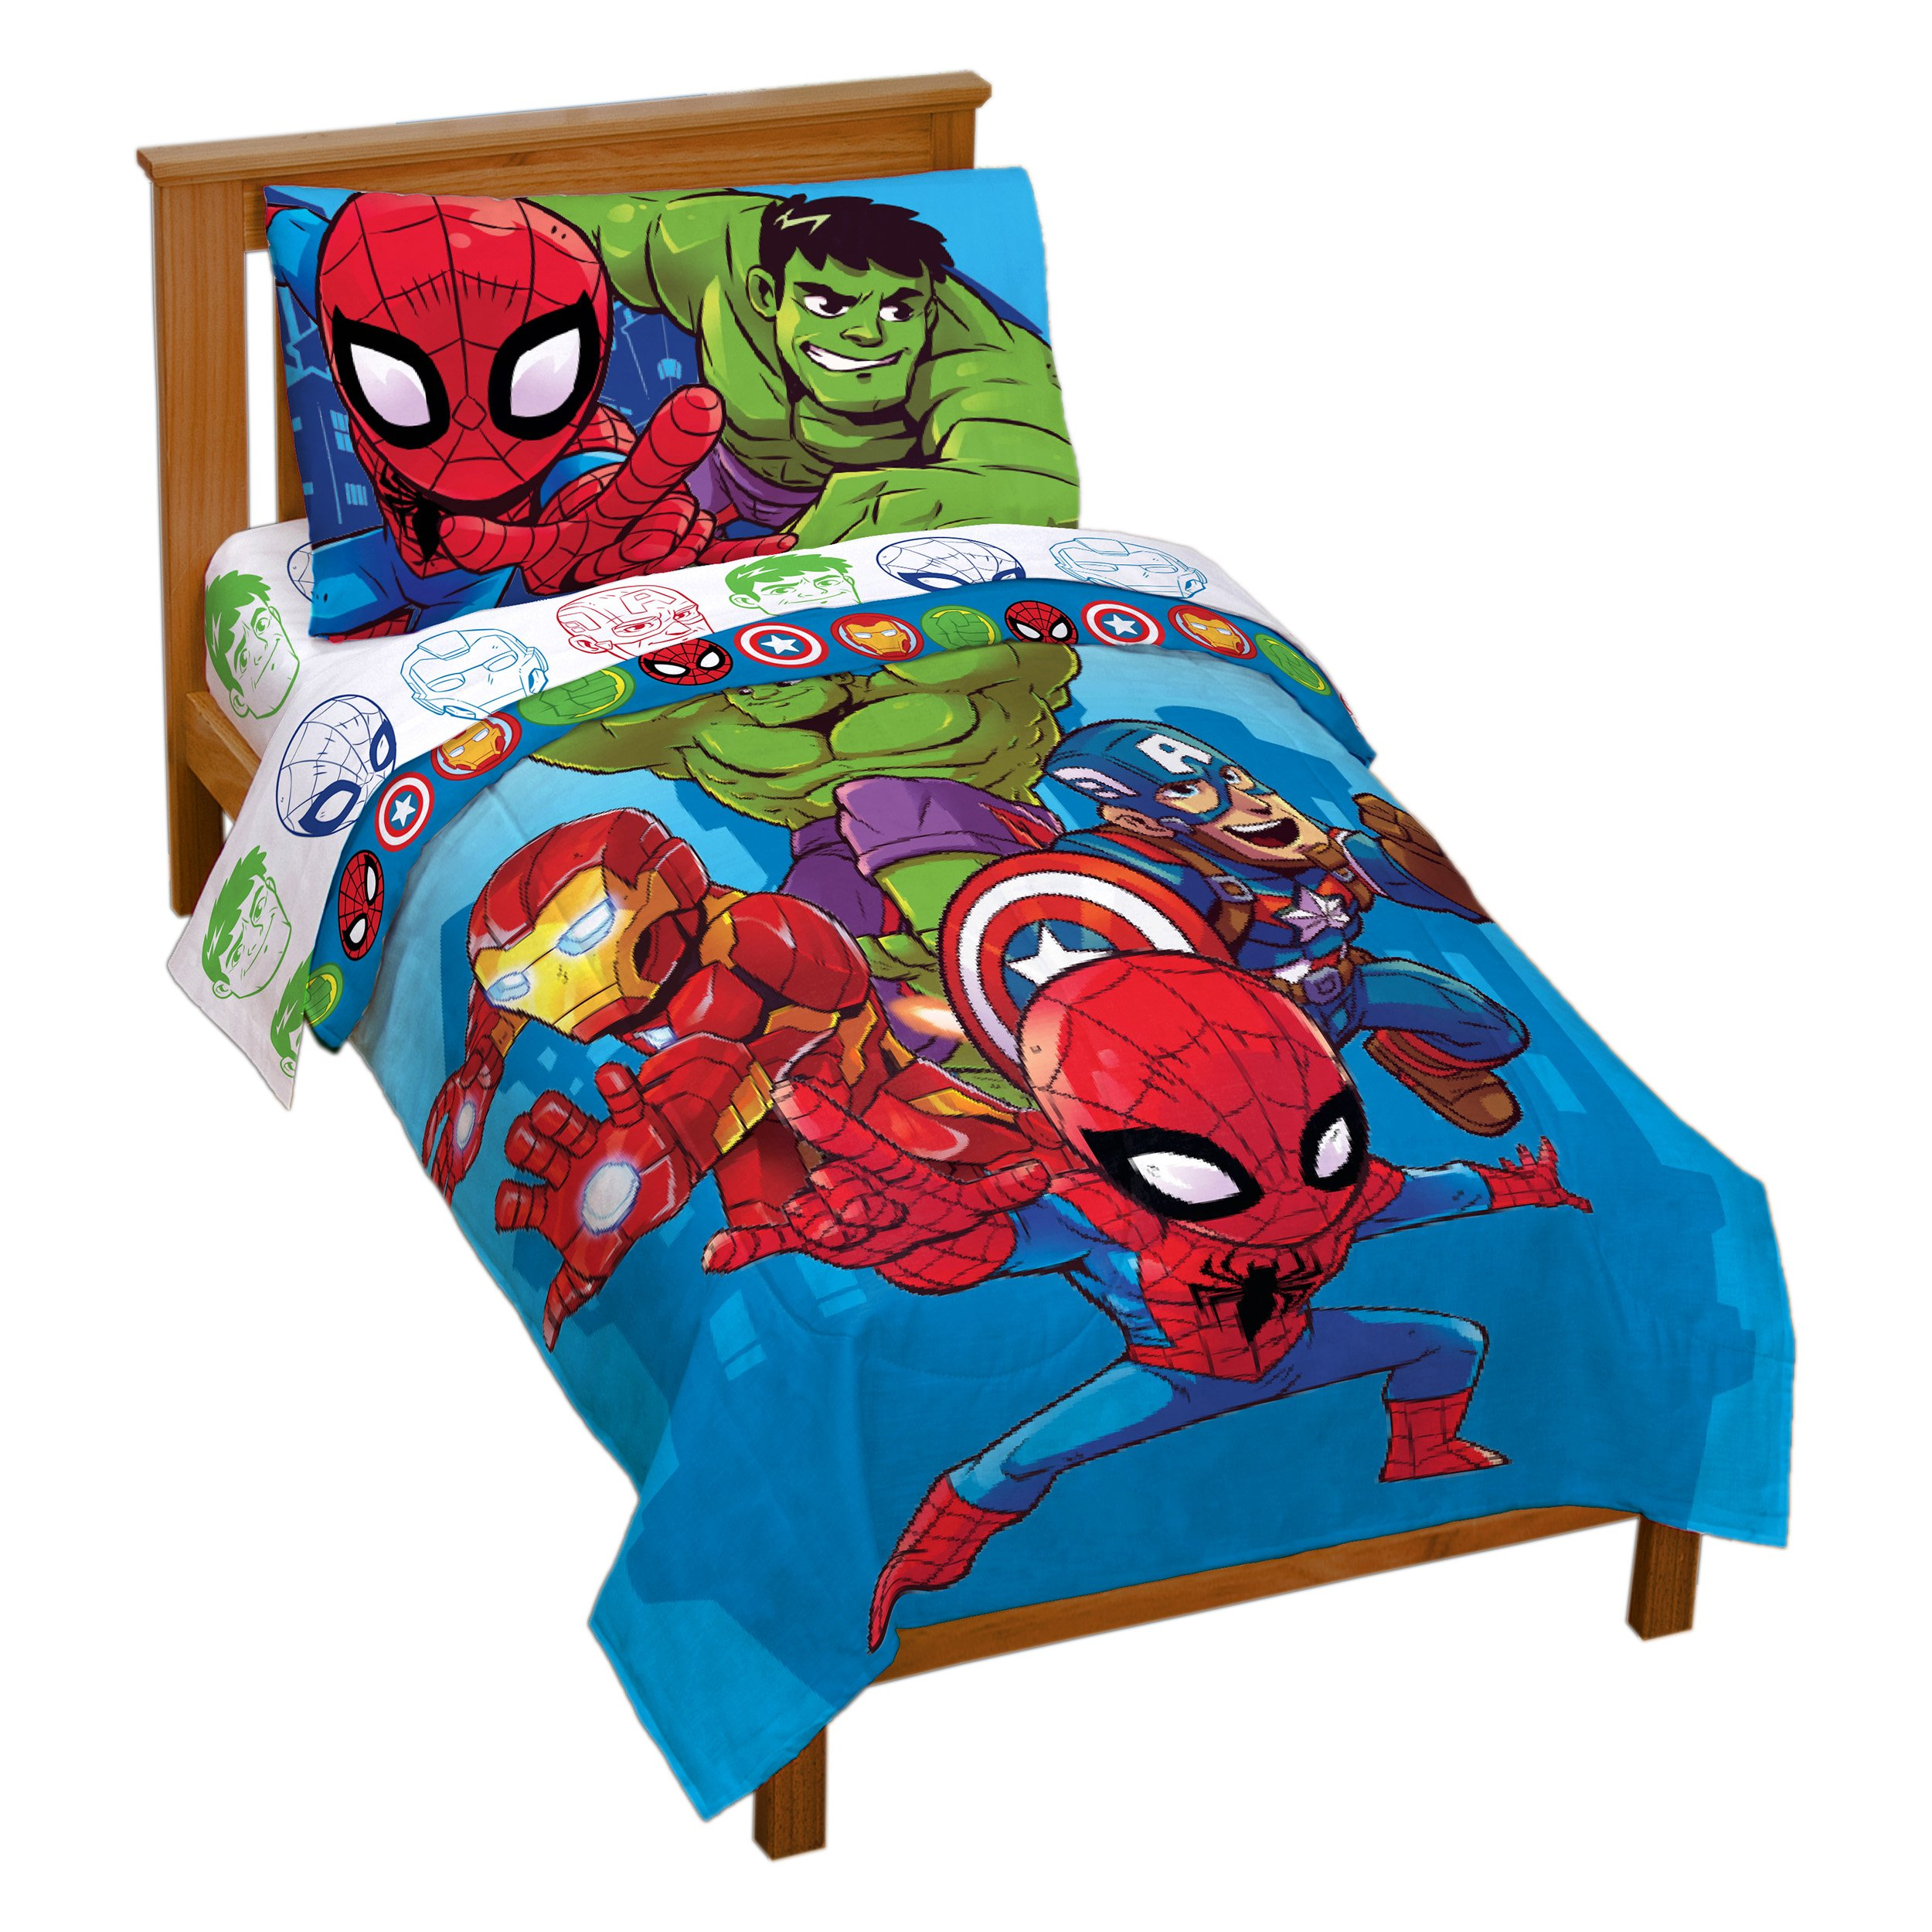 Jay Franco Marvel Avengers Heroes Amigos 4 Piece Toddler Bed Set - Super Soft Microfiber Bed Set - Bedding Features Captain America, Hulk, Iron Man, and Spiderman (Official Marvel Product) by Jay Franco